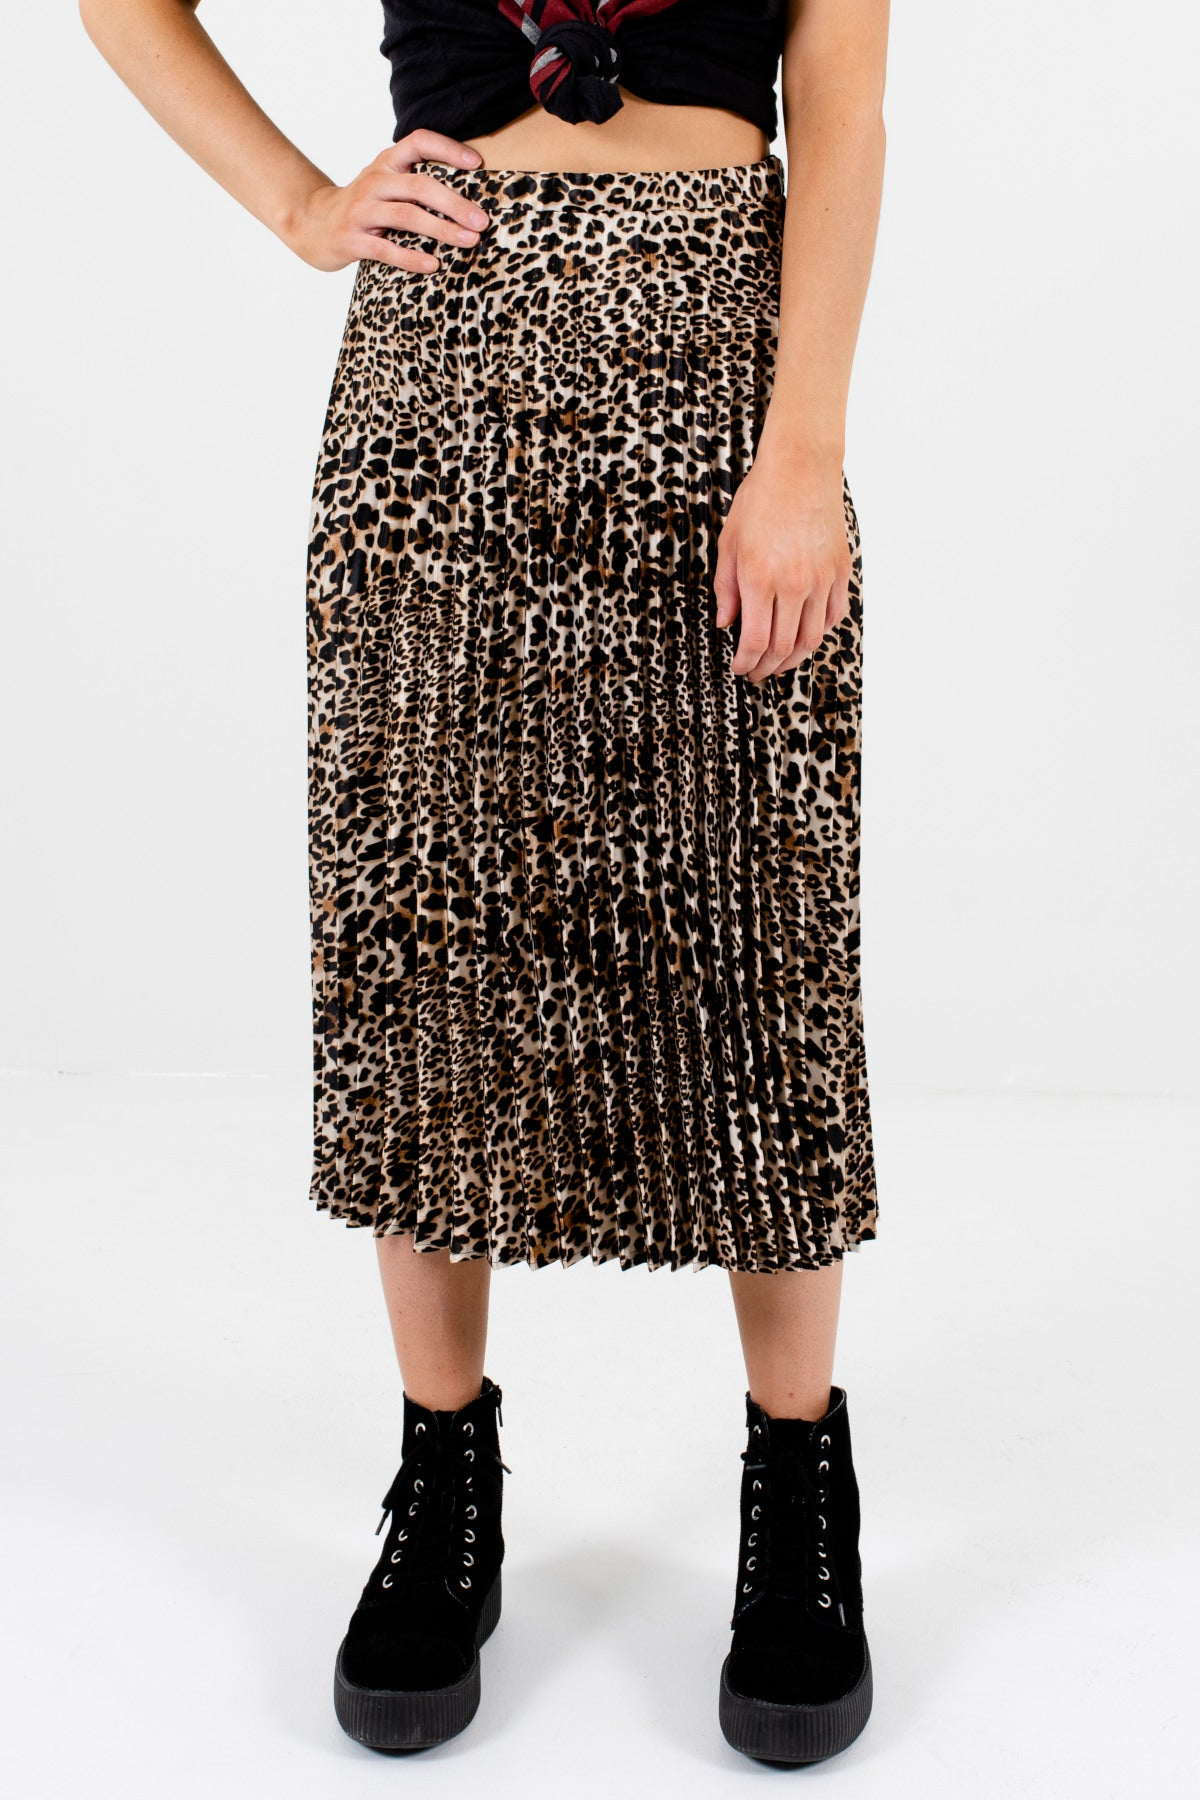 Leopard Print Pleated Midi Skirts Affordable Online Boutique